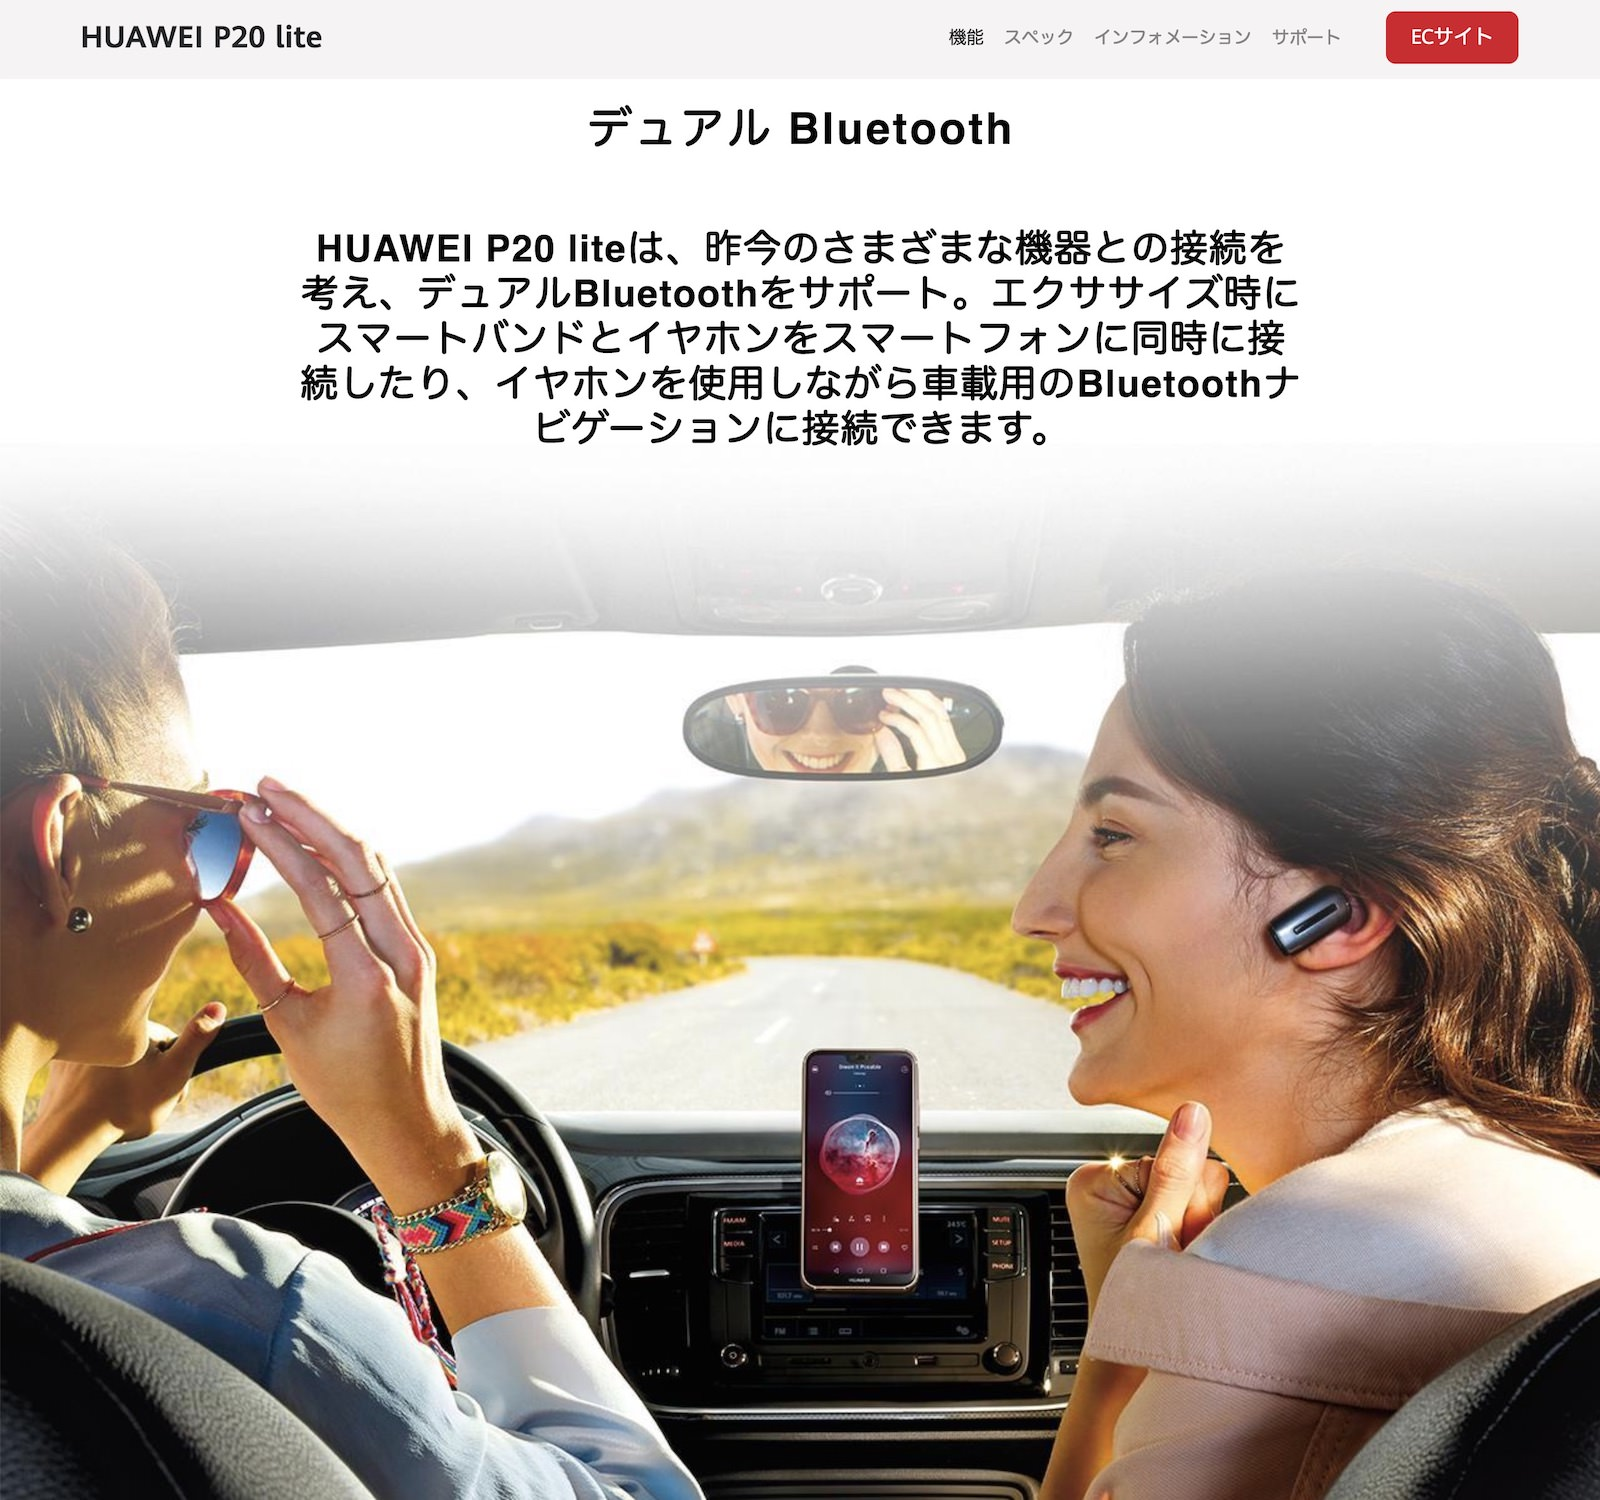 Dual Bluetooth on Huawei P20 Lite